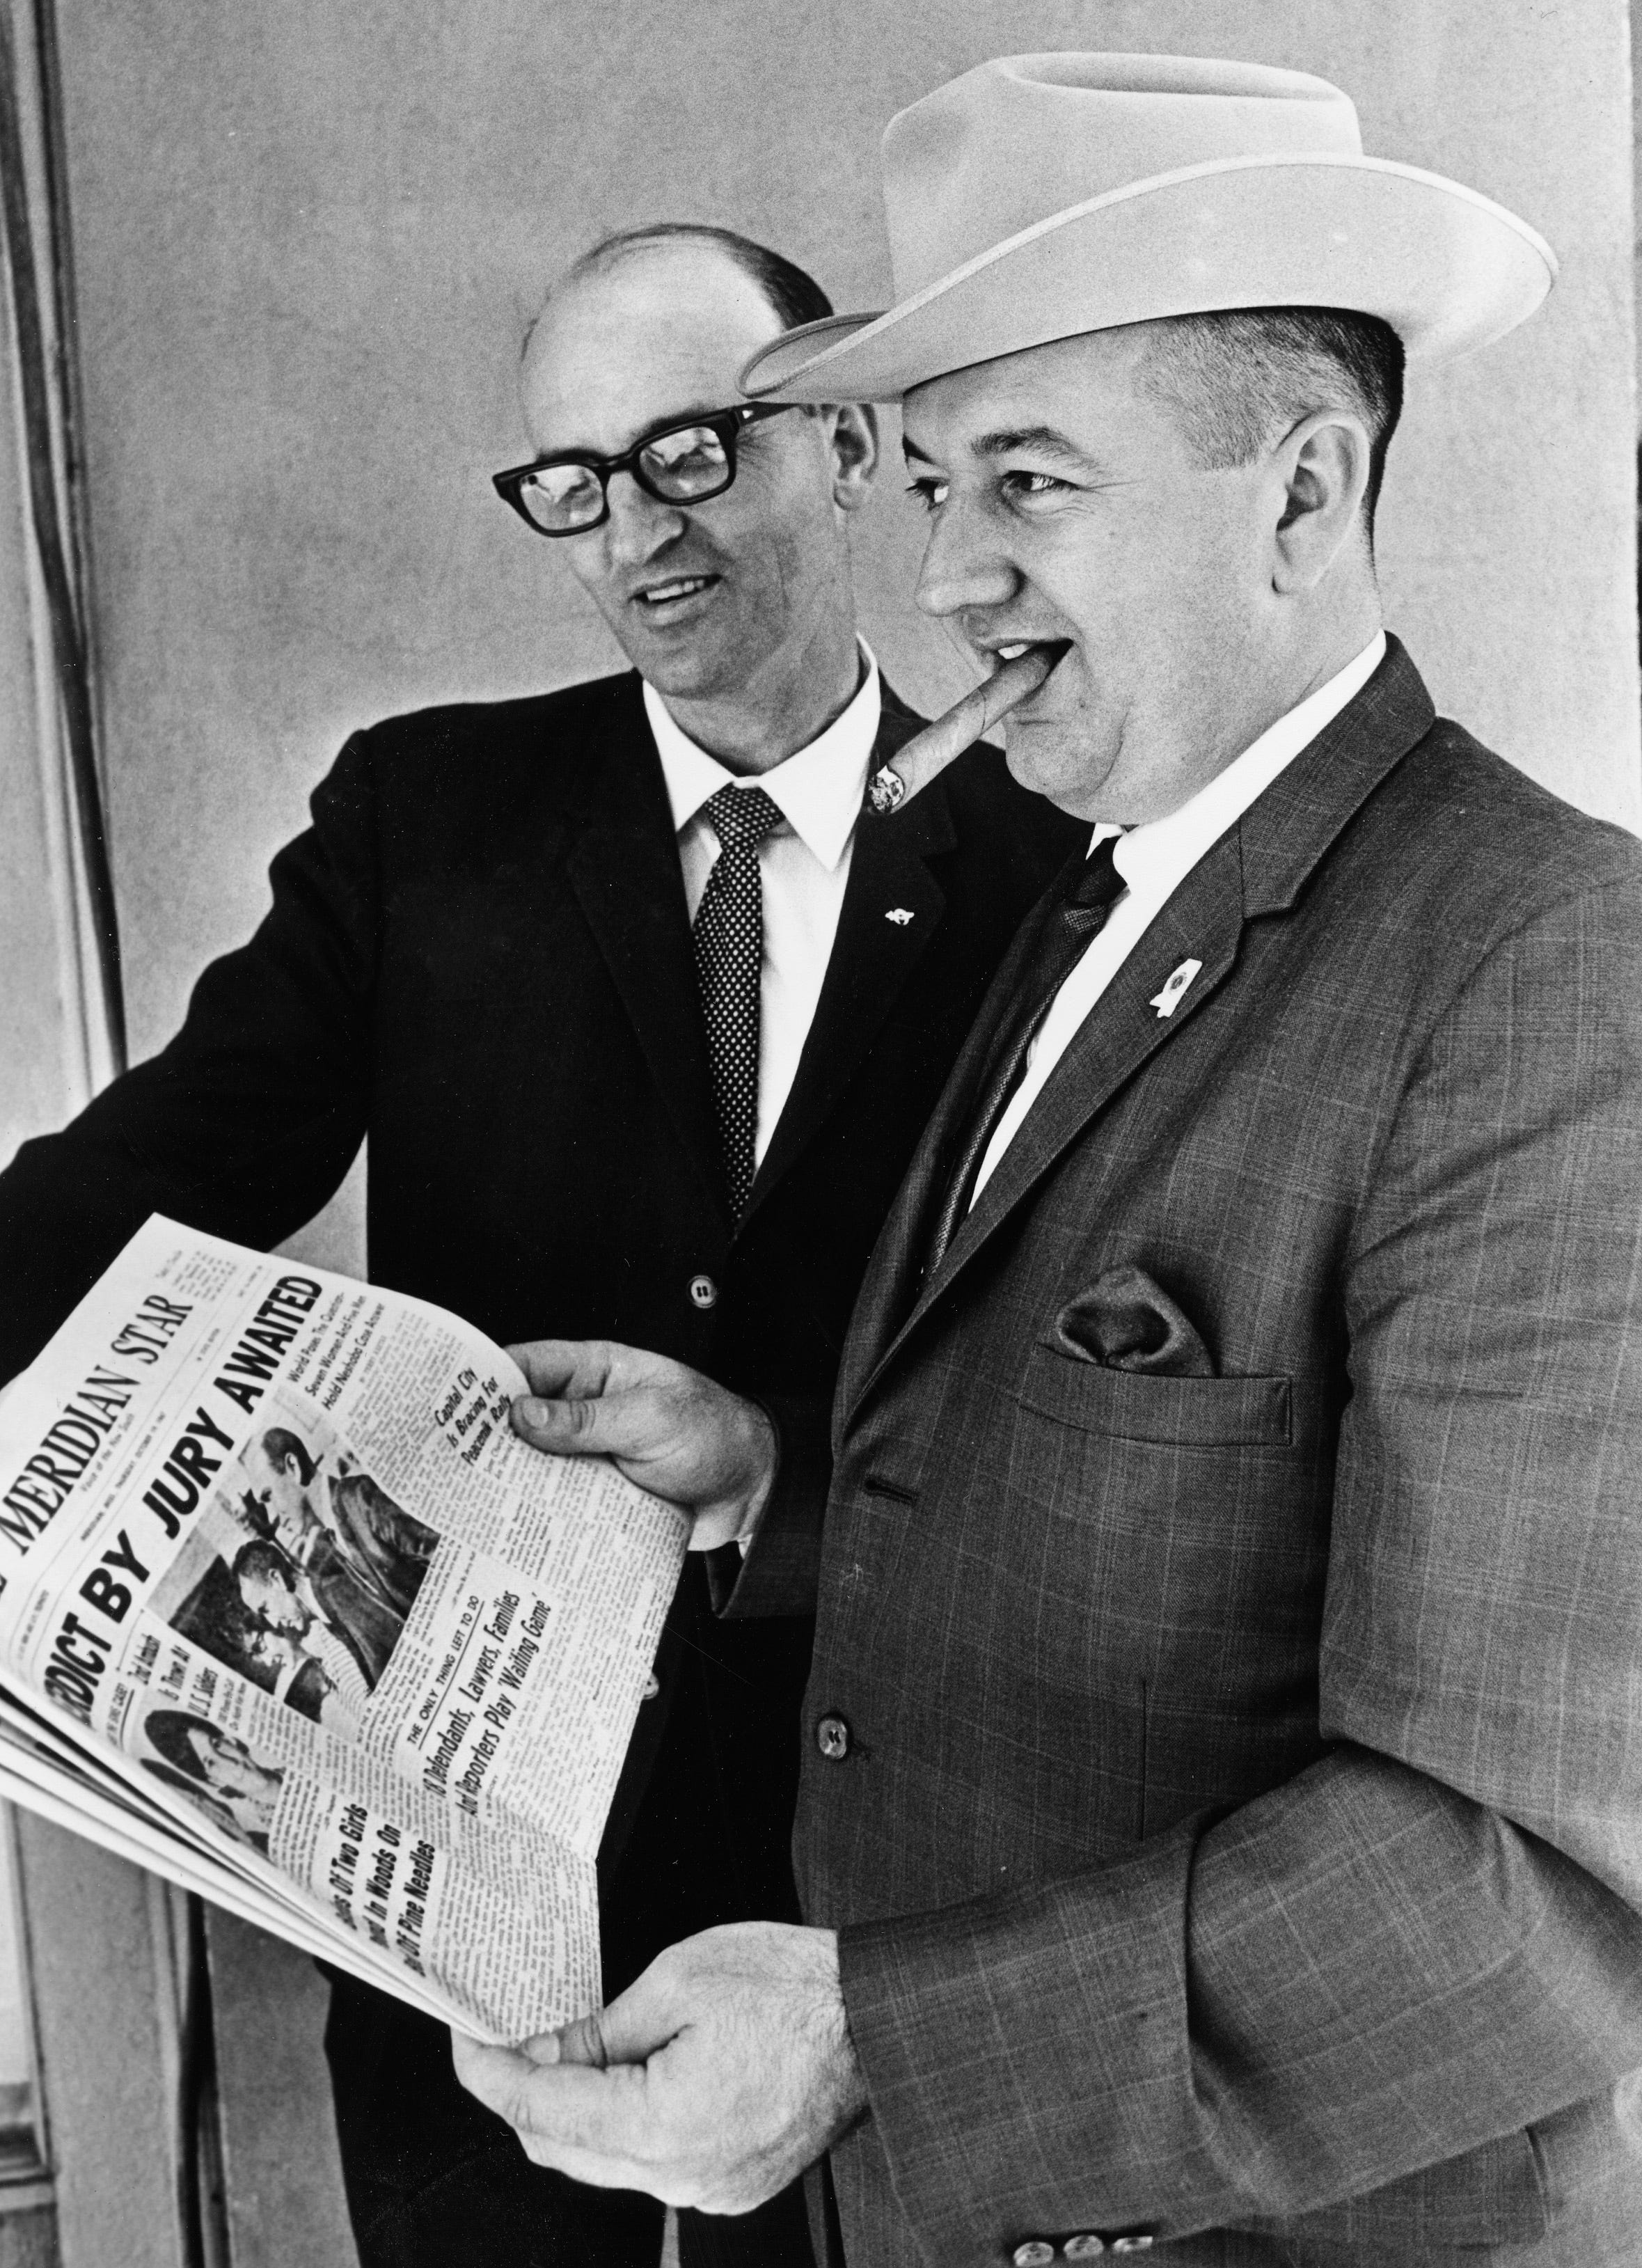 In this Oct. 19, 1967, file photo, Neshoba County Sheriff Deputy Cecil Price, right, holds a copy of the Meridian Star newspaper with Edgar Ray Killen, left, as they await their verdicts in the murder trial of three civil rights workers, James Chaney, Andrew Goodman and Michael Schwerner in Meridian, Miss.